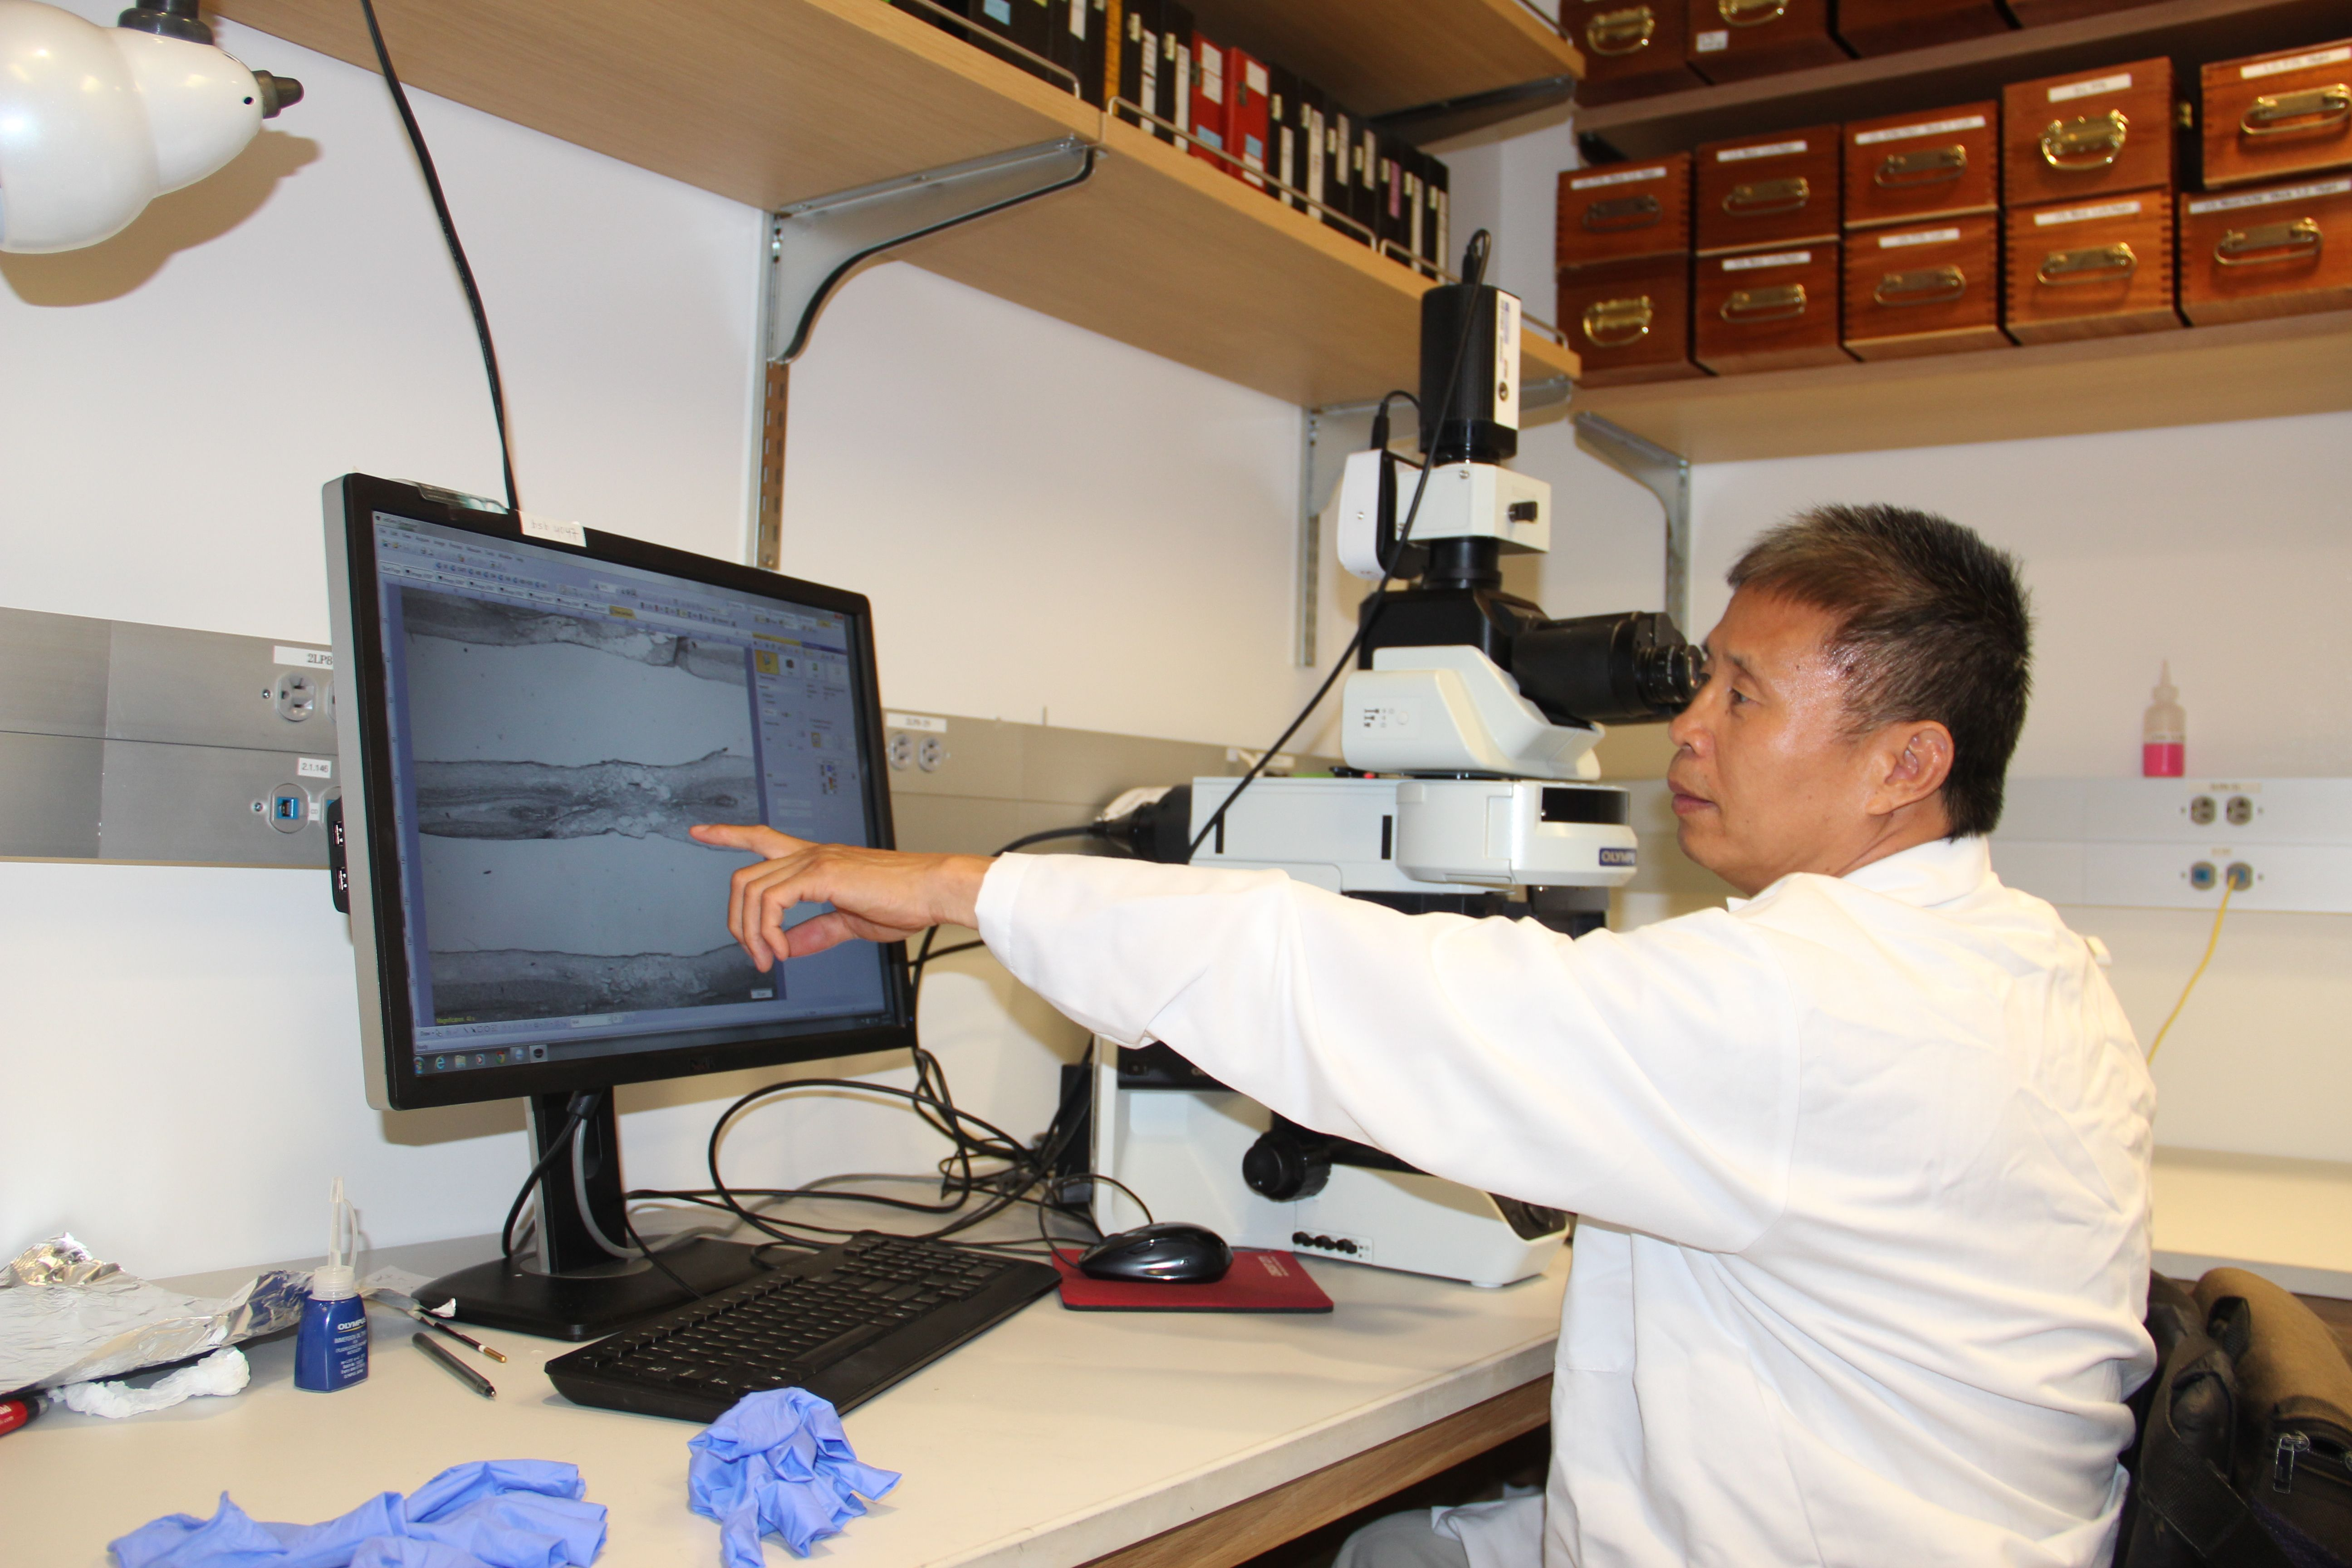 For Paul Lu, SCI Research is Personal